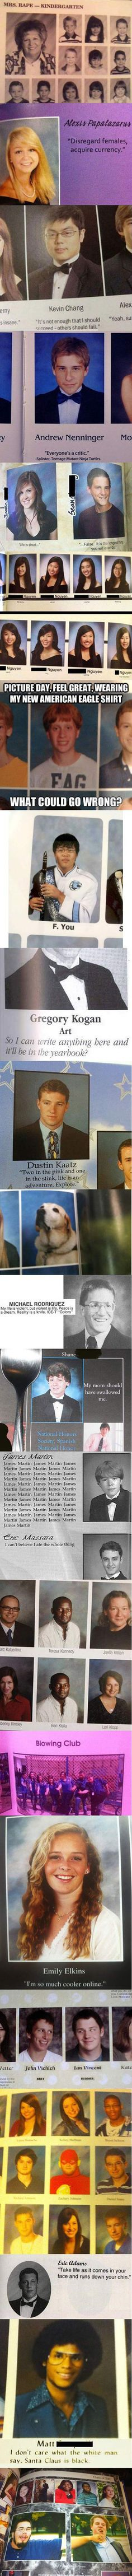 Best yearbook moments.